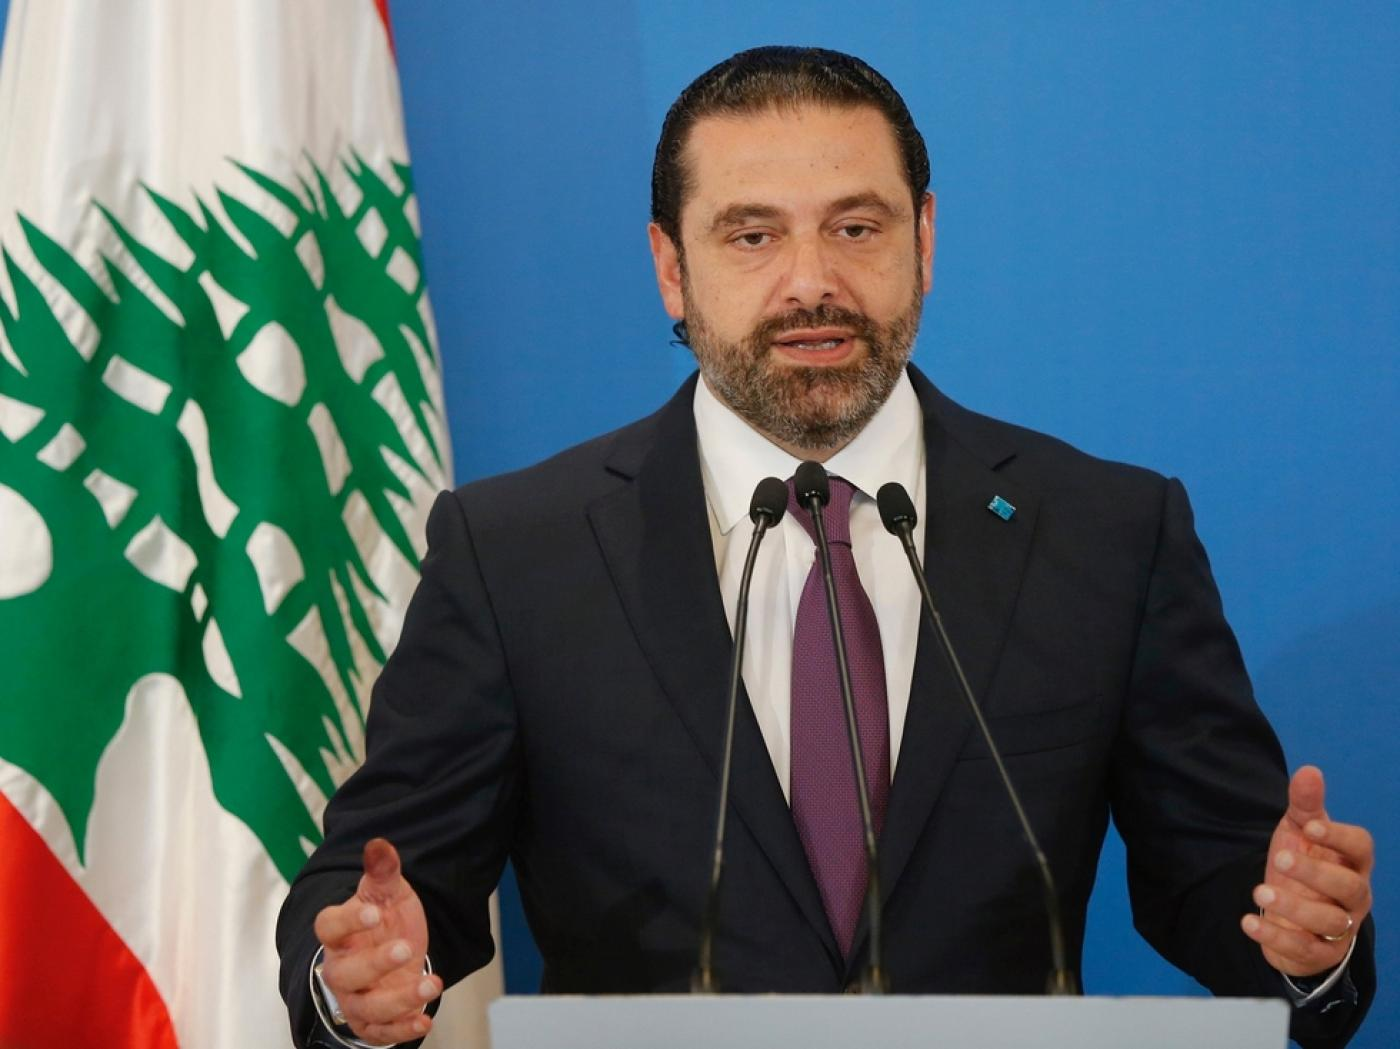 Hariri heads to Saudi for second time since suspect